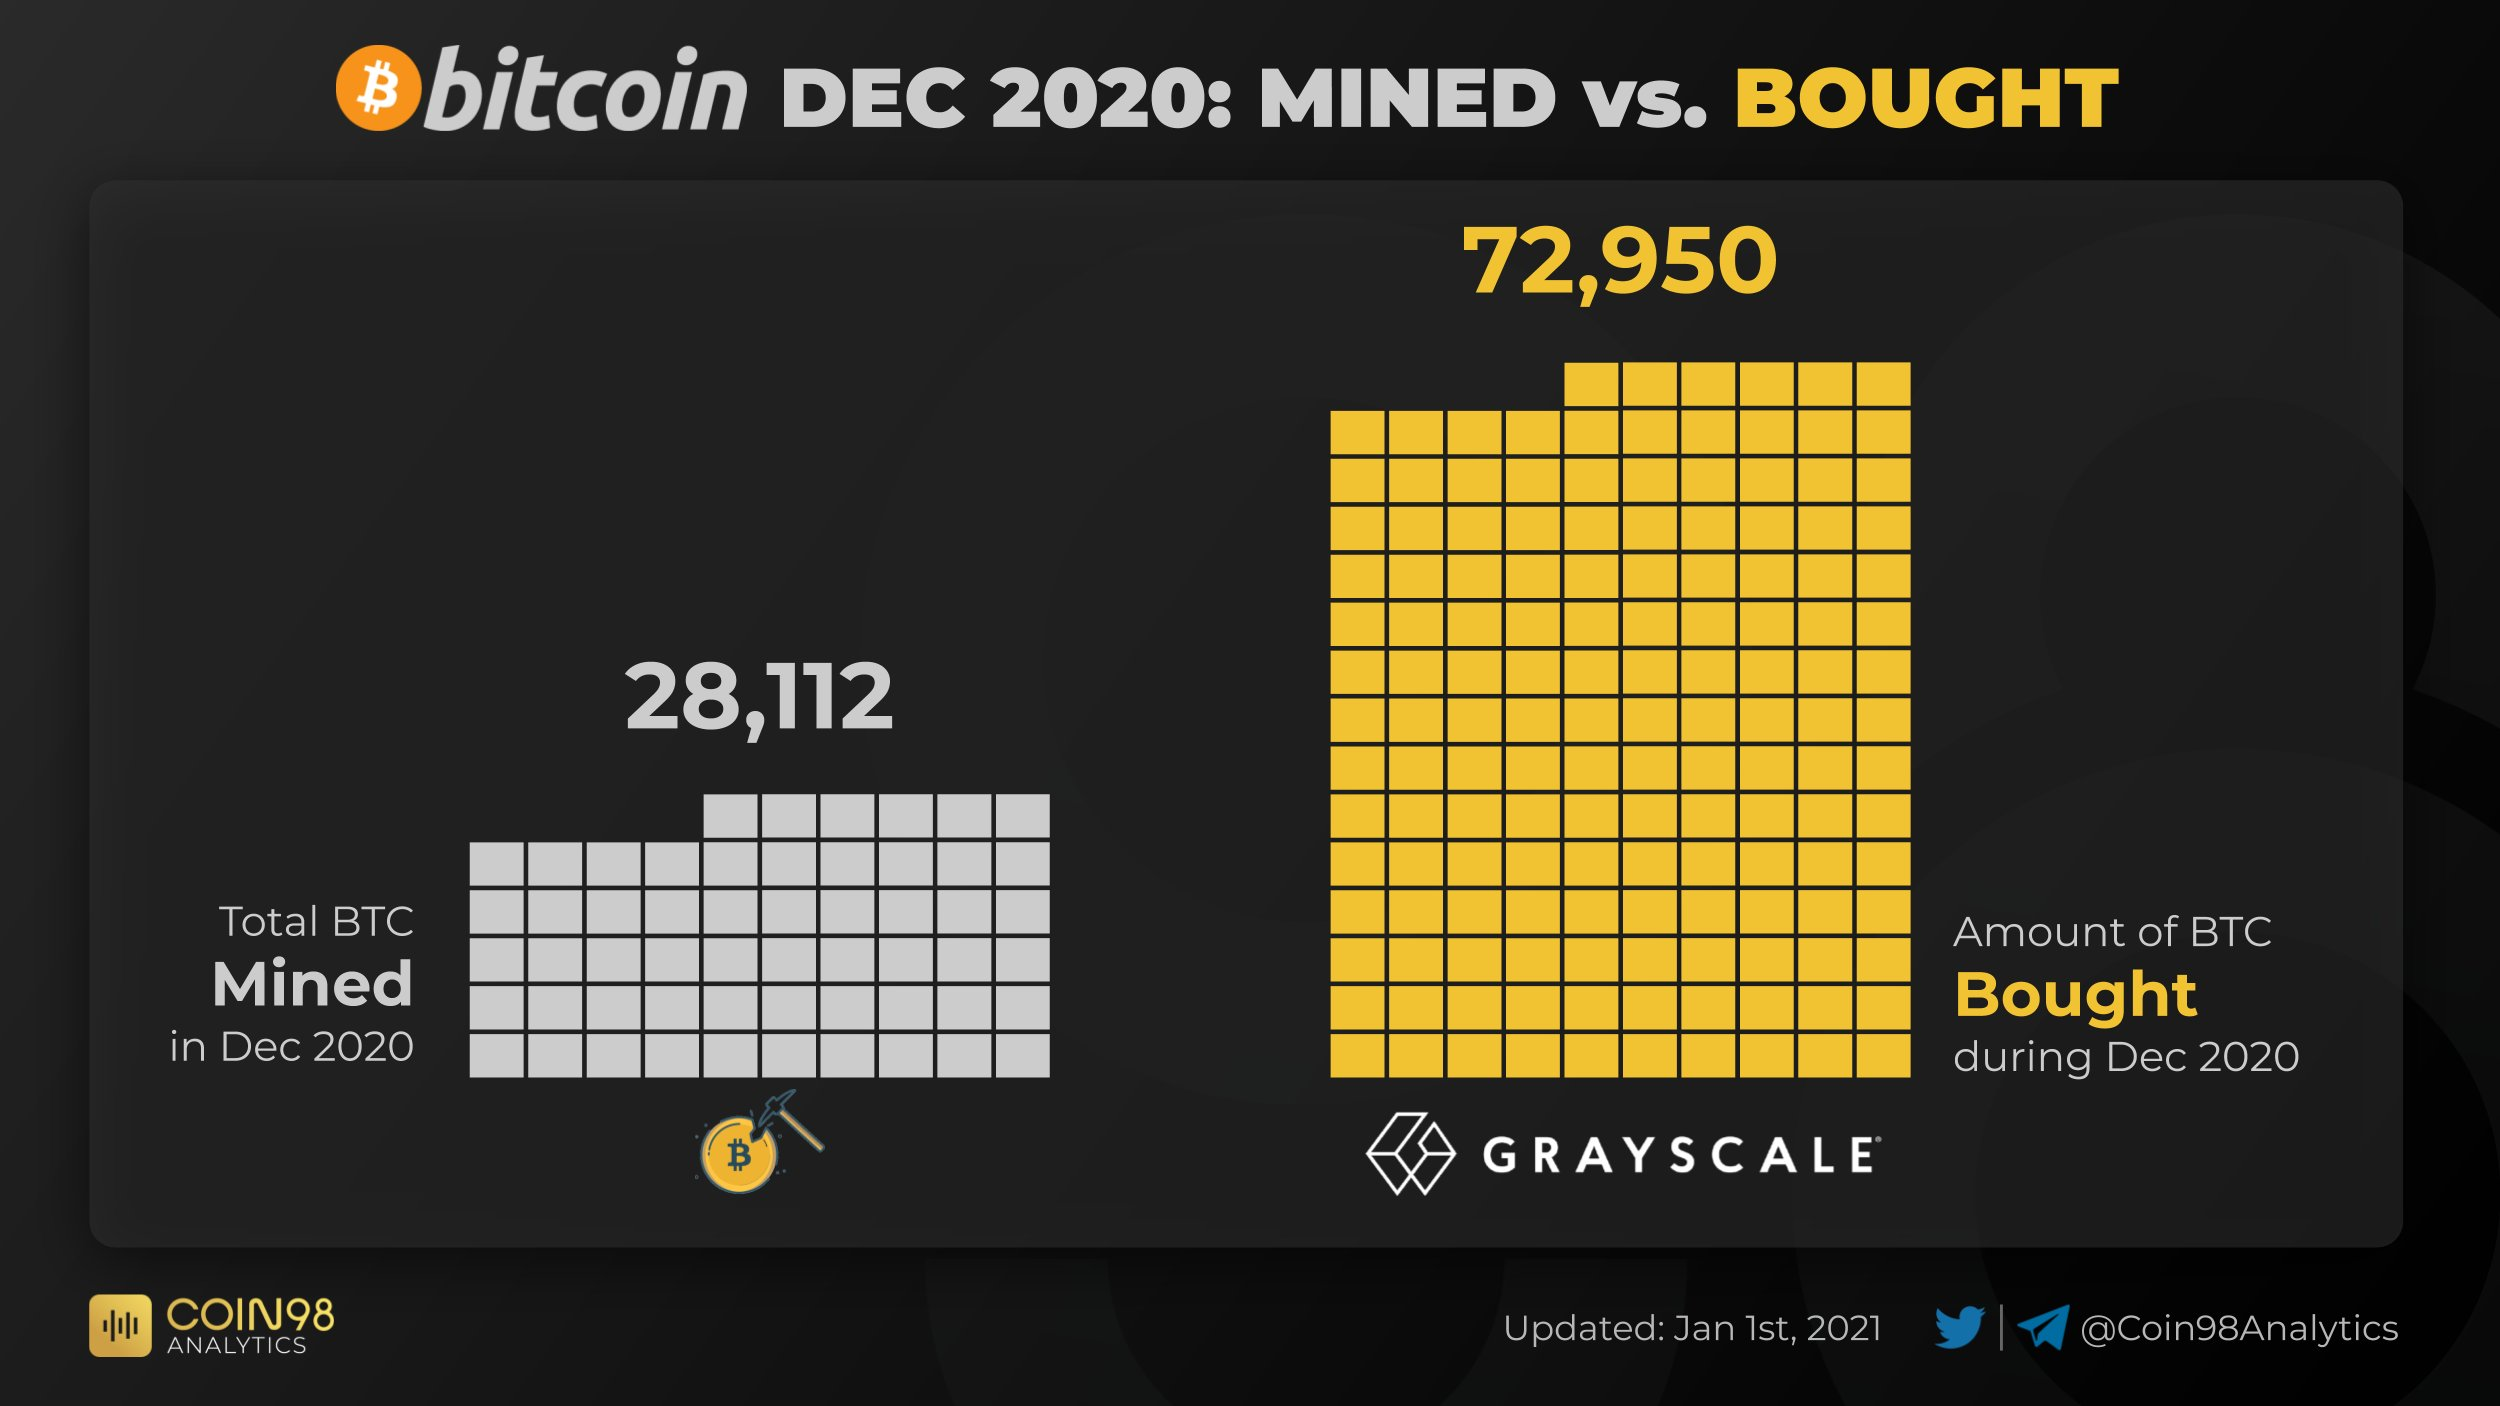 Bitcoin supply squeeze heats up as Grayscale buys nearly 3x the BTC mined in December